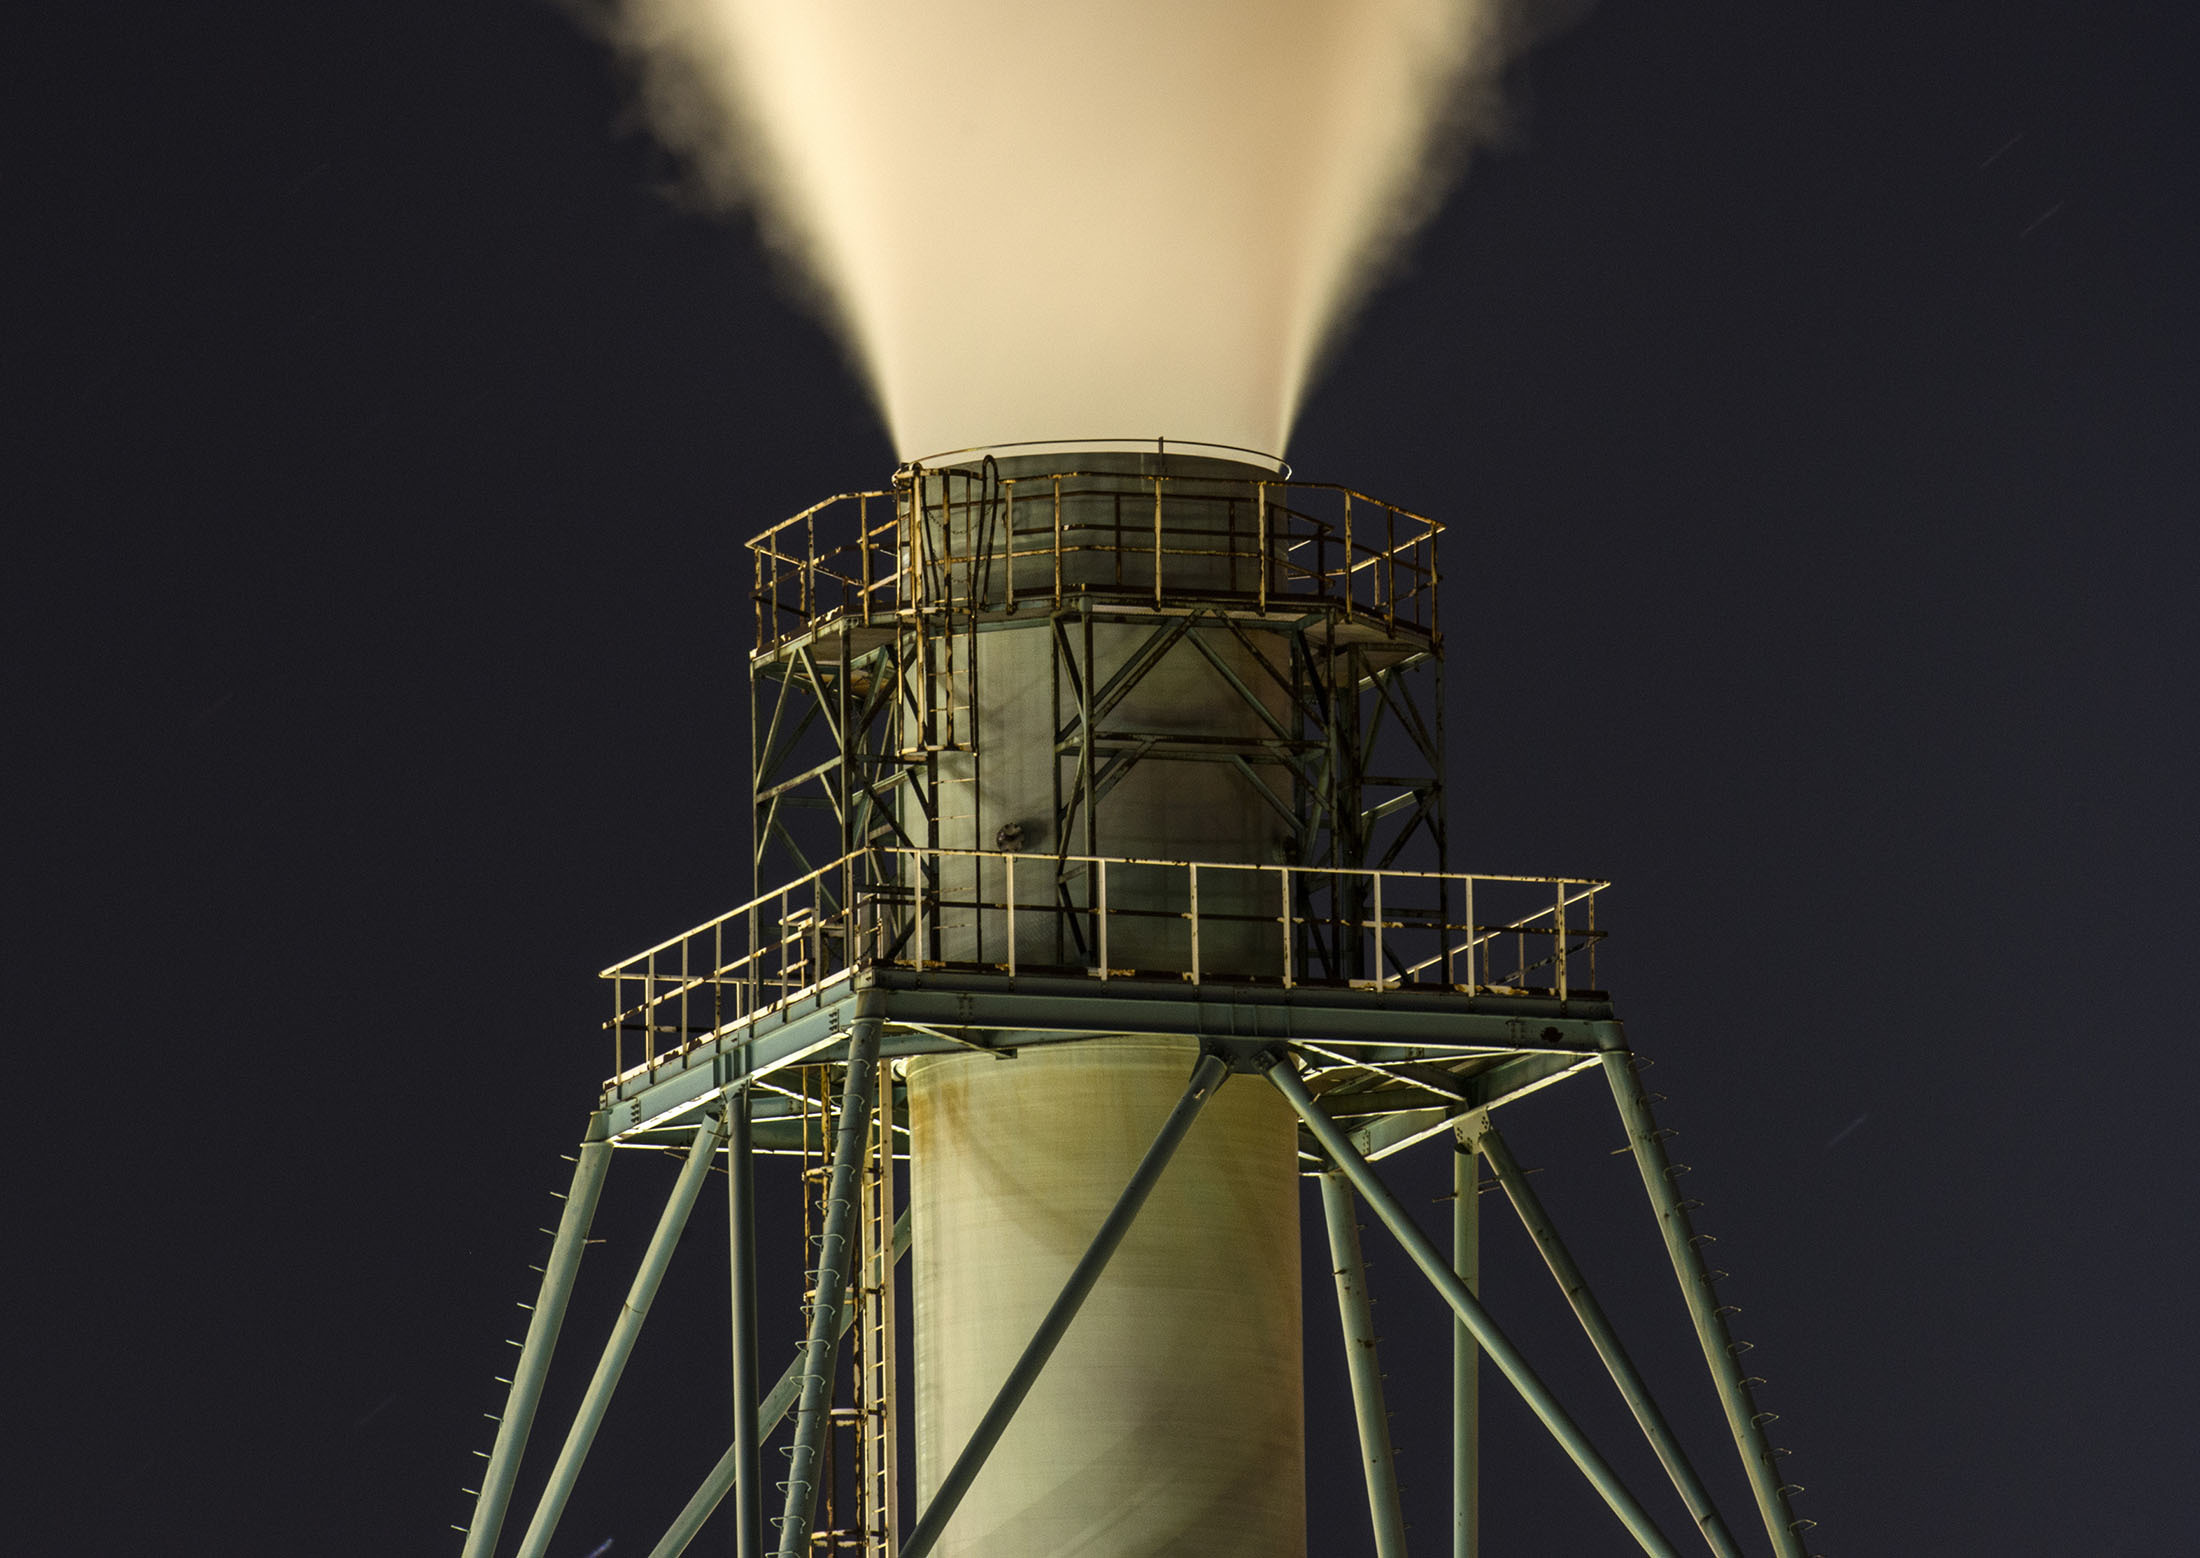 Vapor rises into the sky from a smoke stack at the JXTG Nippon Oil & Energy Corp. Muroran petrochemical plant illuminated at night in Muroran, Japan, on Friday, Oct. 27, 2017. JXTG Holdings Inc., JXTG Nippon Oil & Energy's parent company, is scheduled to announce its second-quarter earnings figures on Nov. 10. Photographer: Eiji Ohashi/Bloomberg